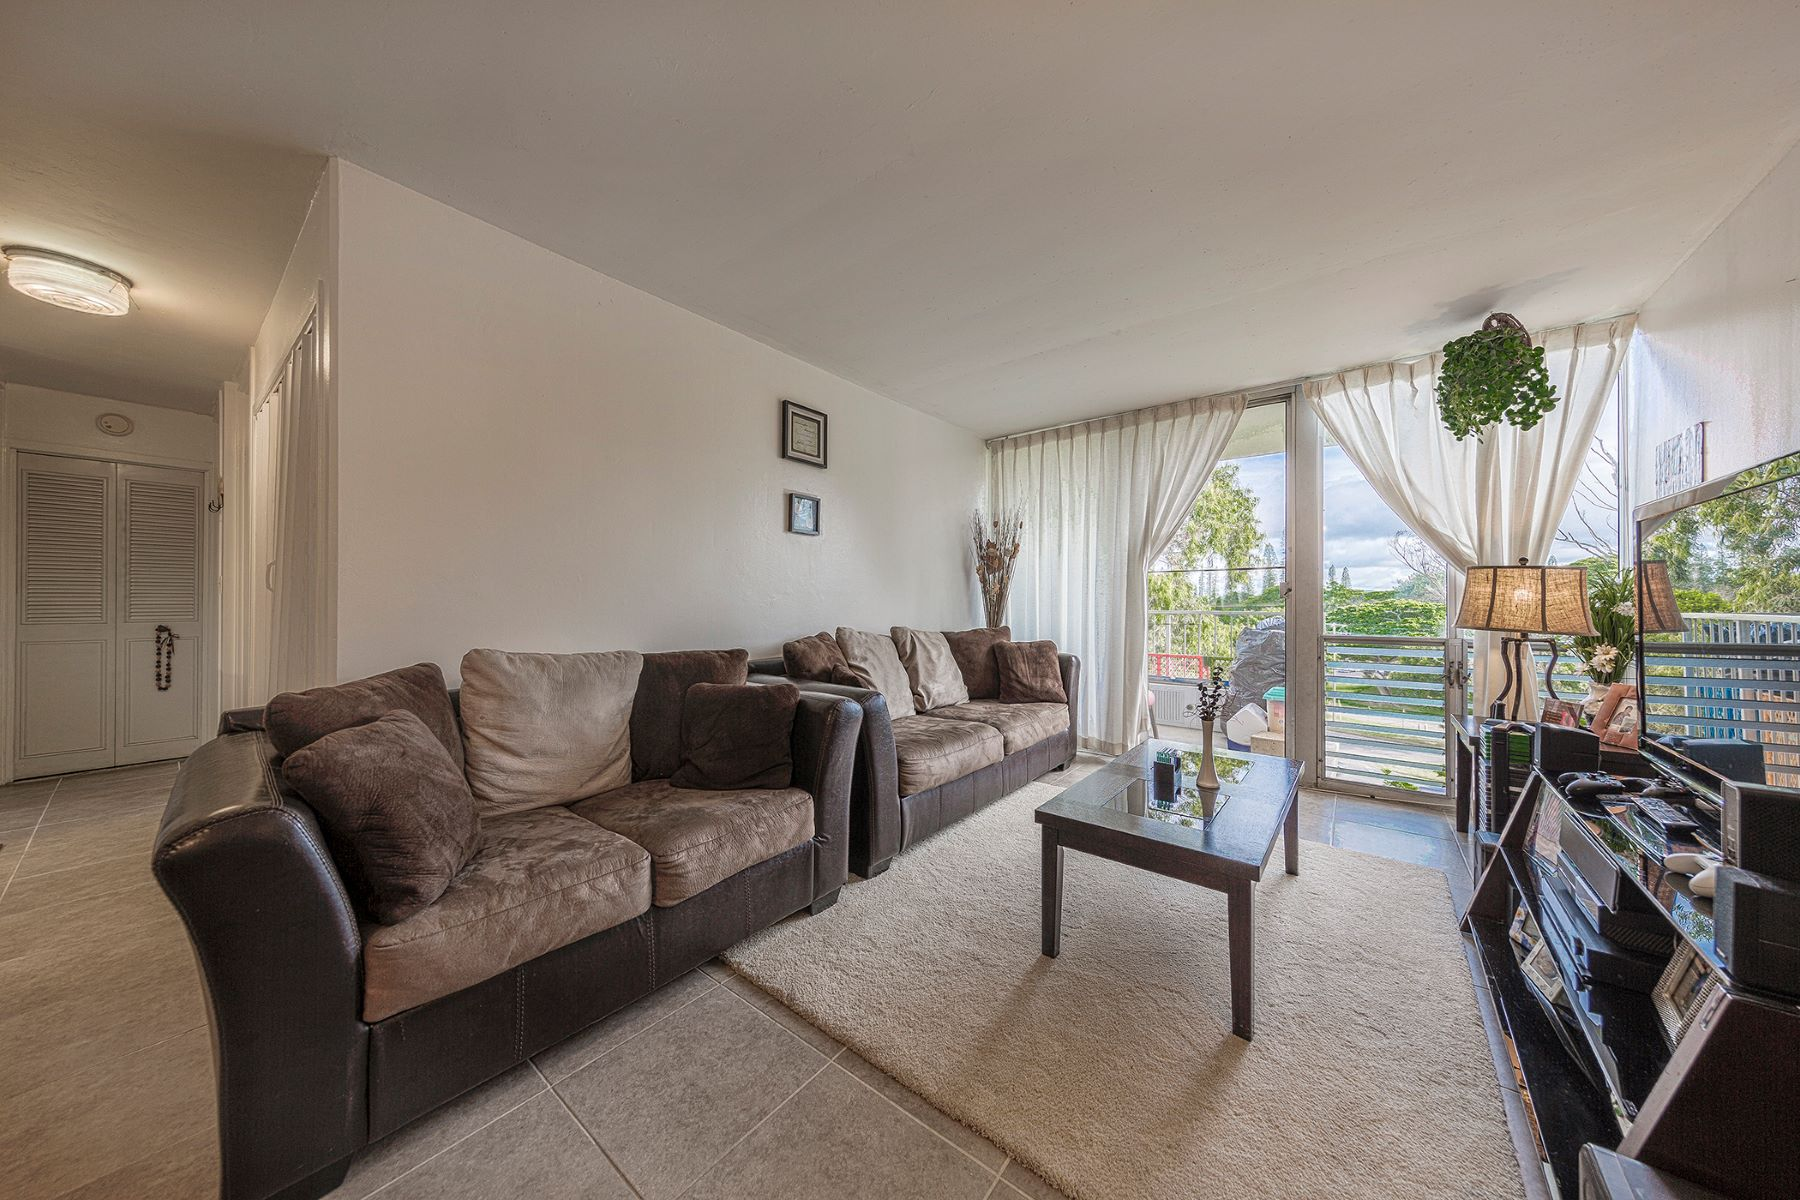 Condominium for Sale at Quiet Woodwinds 1600 Wilikina Drive #A608 Wahiawa, Hawaii 96786 United States